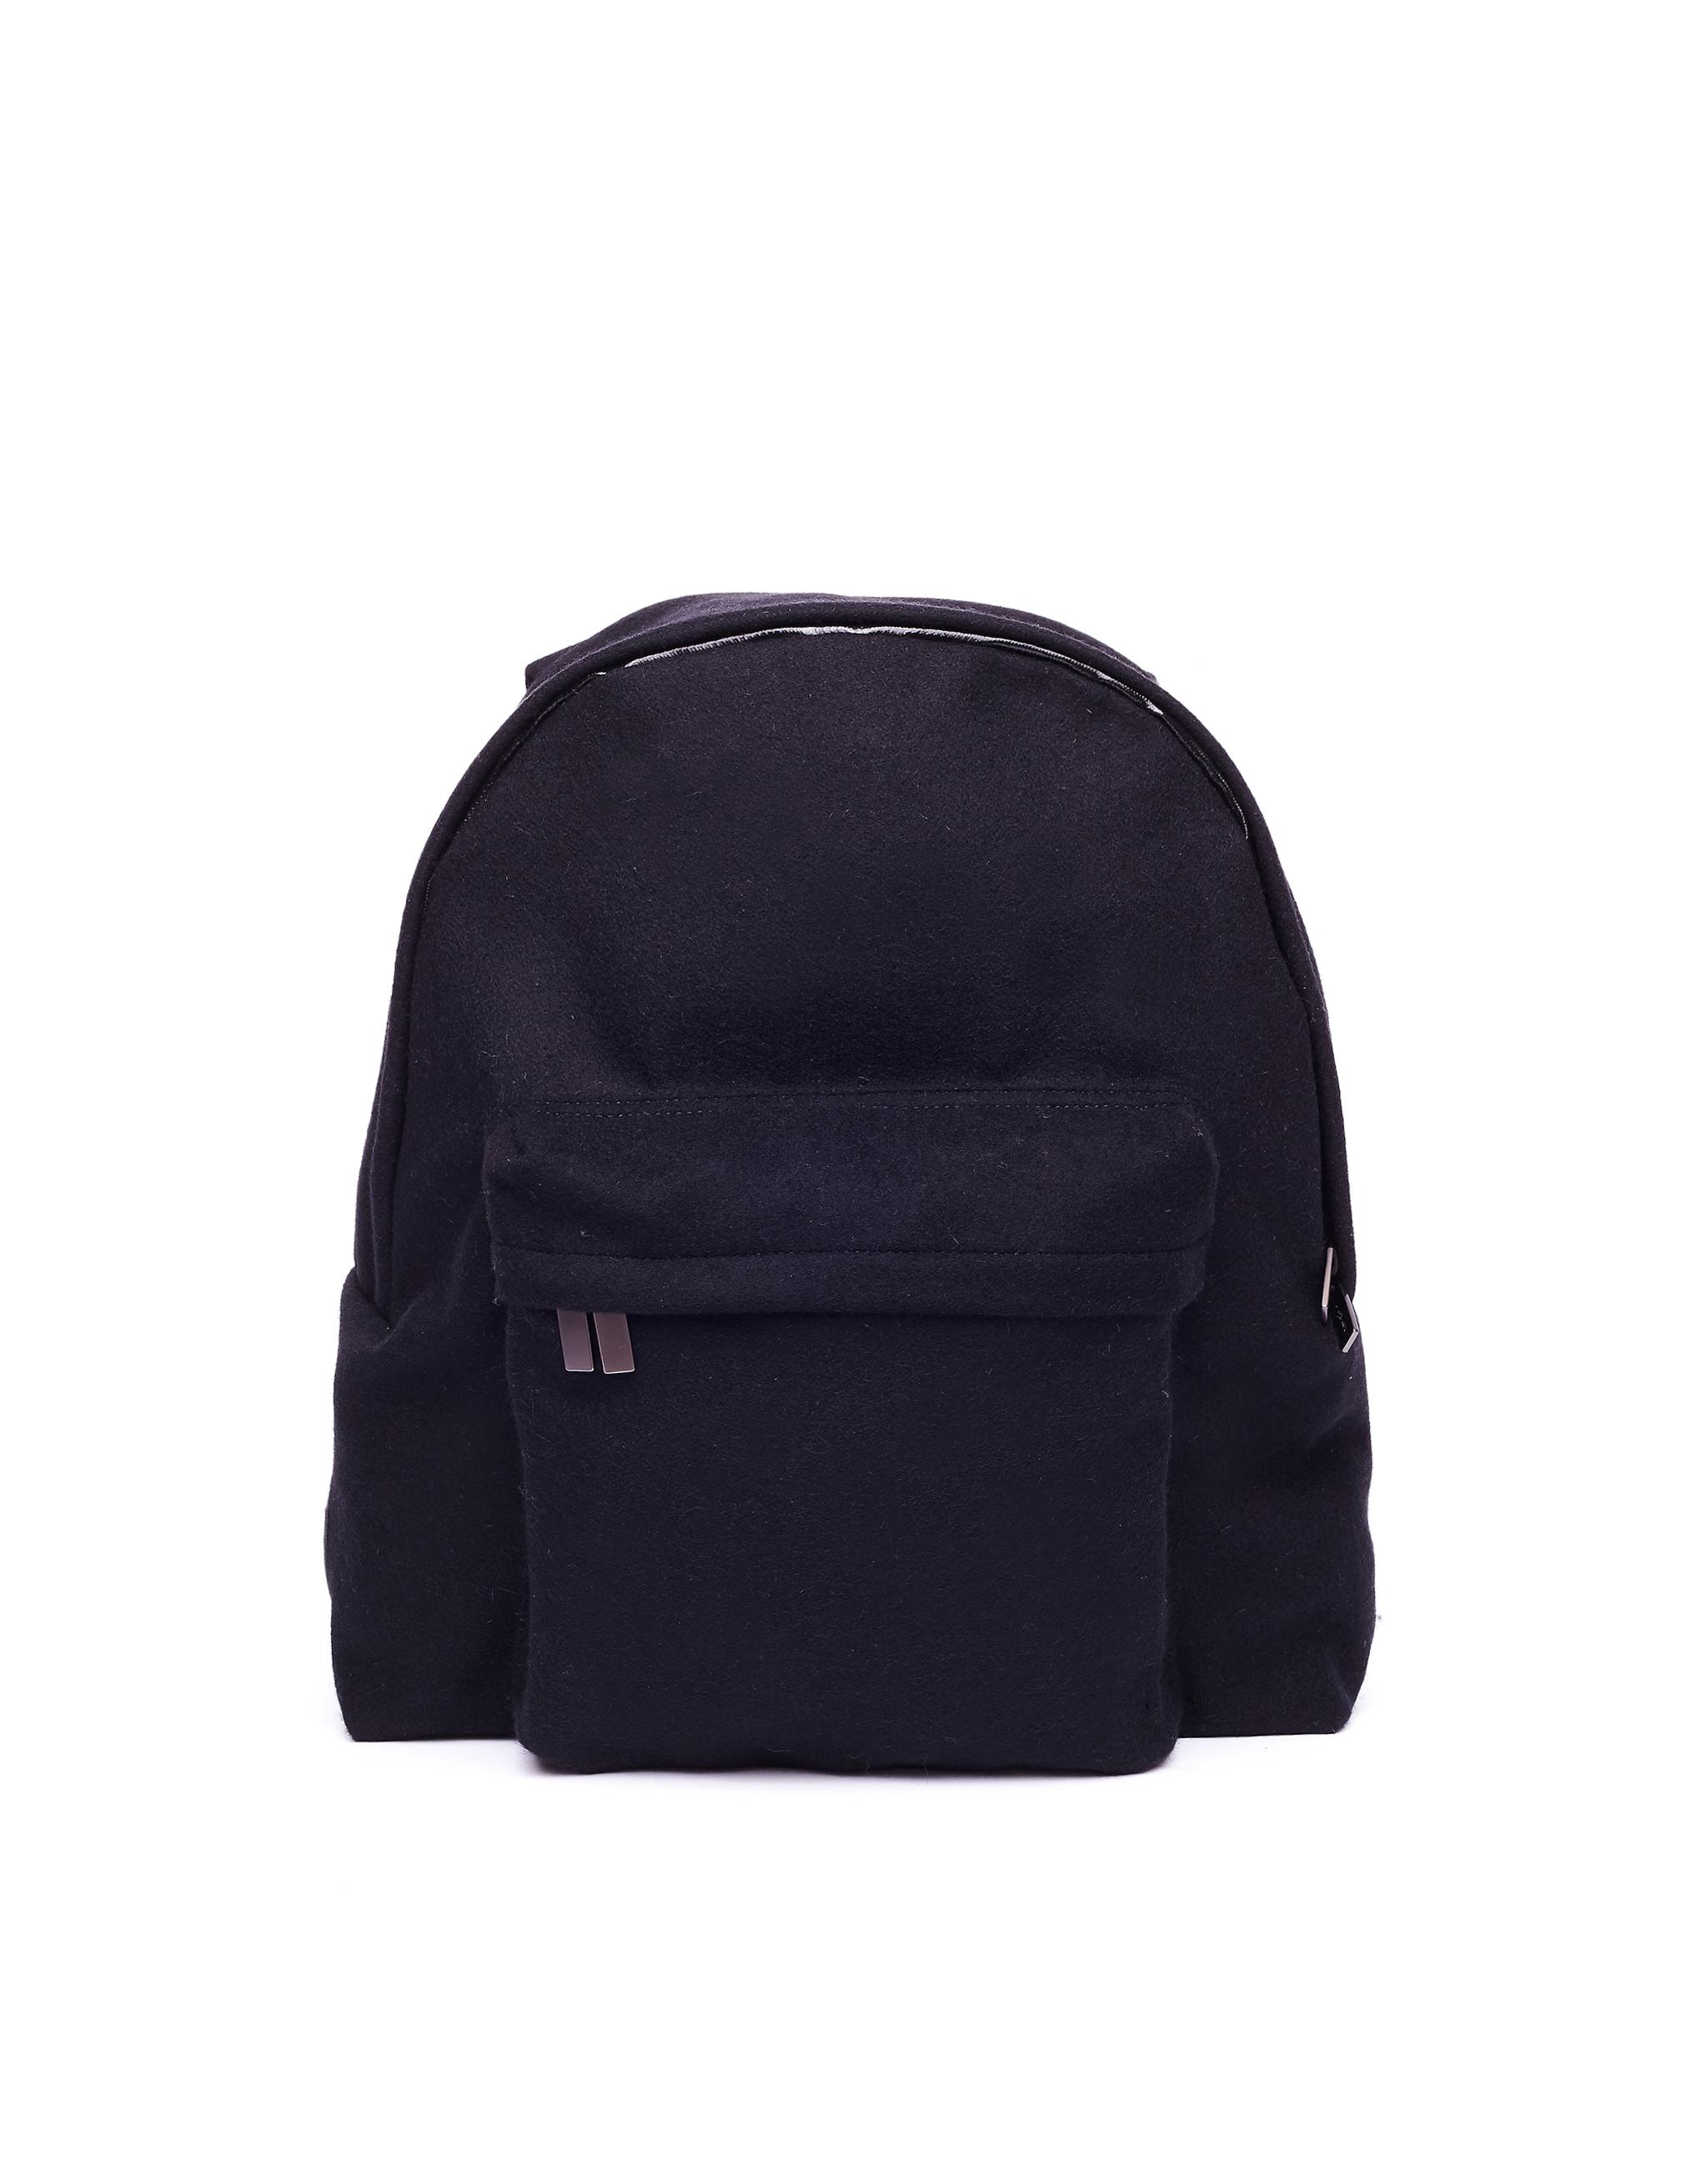 4efcb7fabb Yohji Yamamoto Black Wool Backpack in Black for Men - Lyst